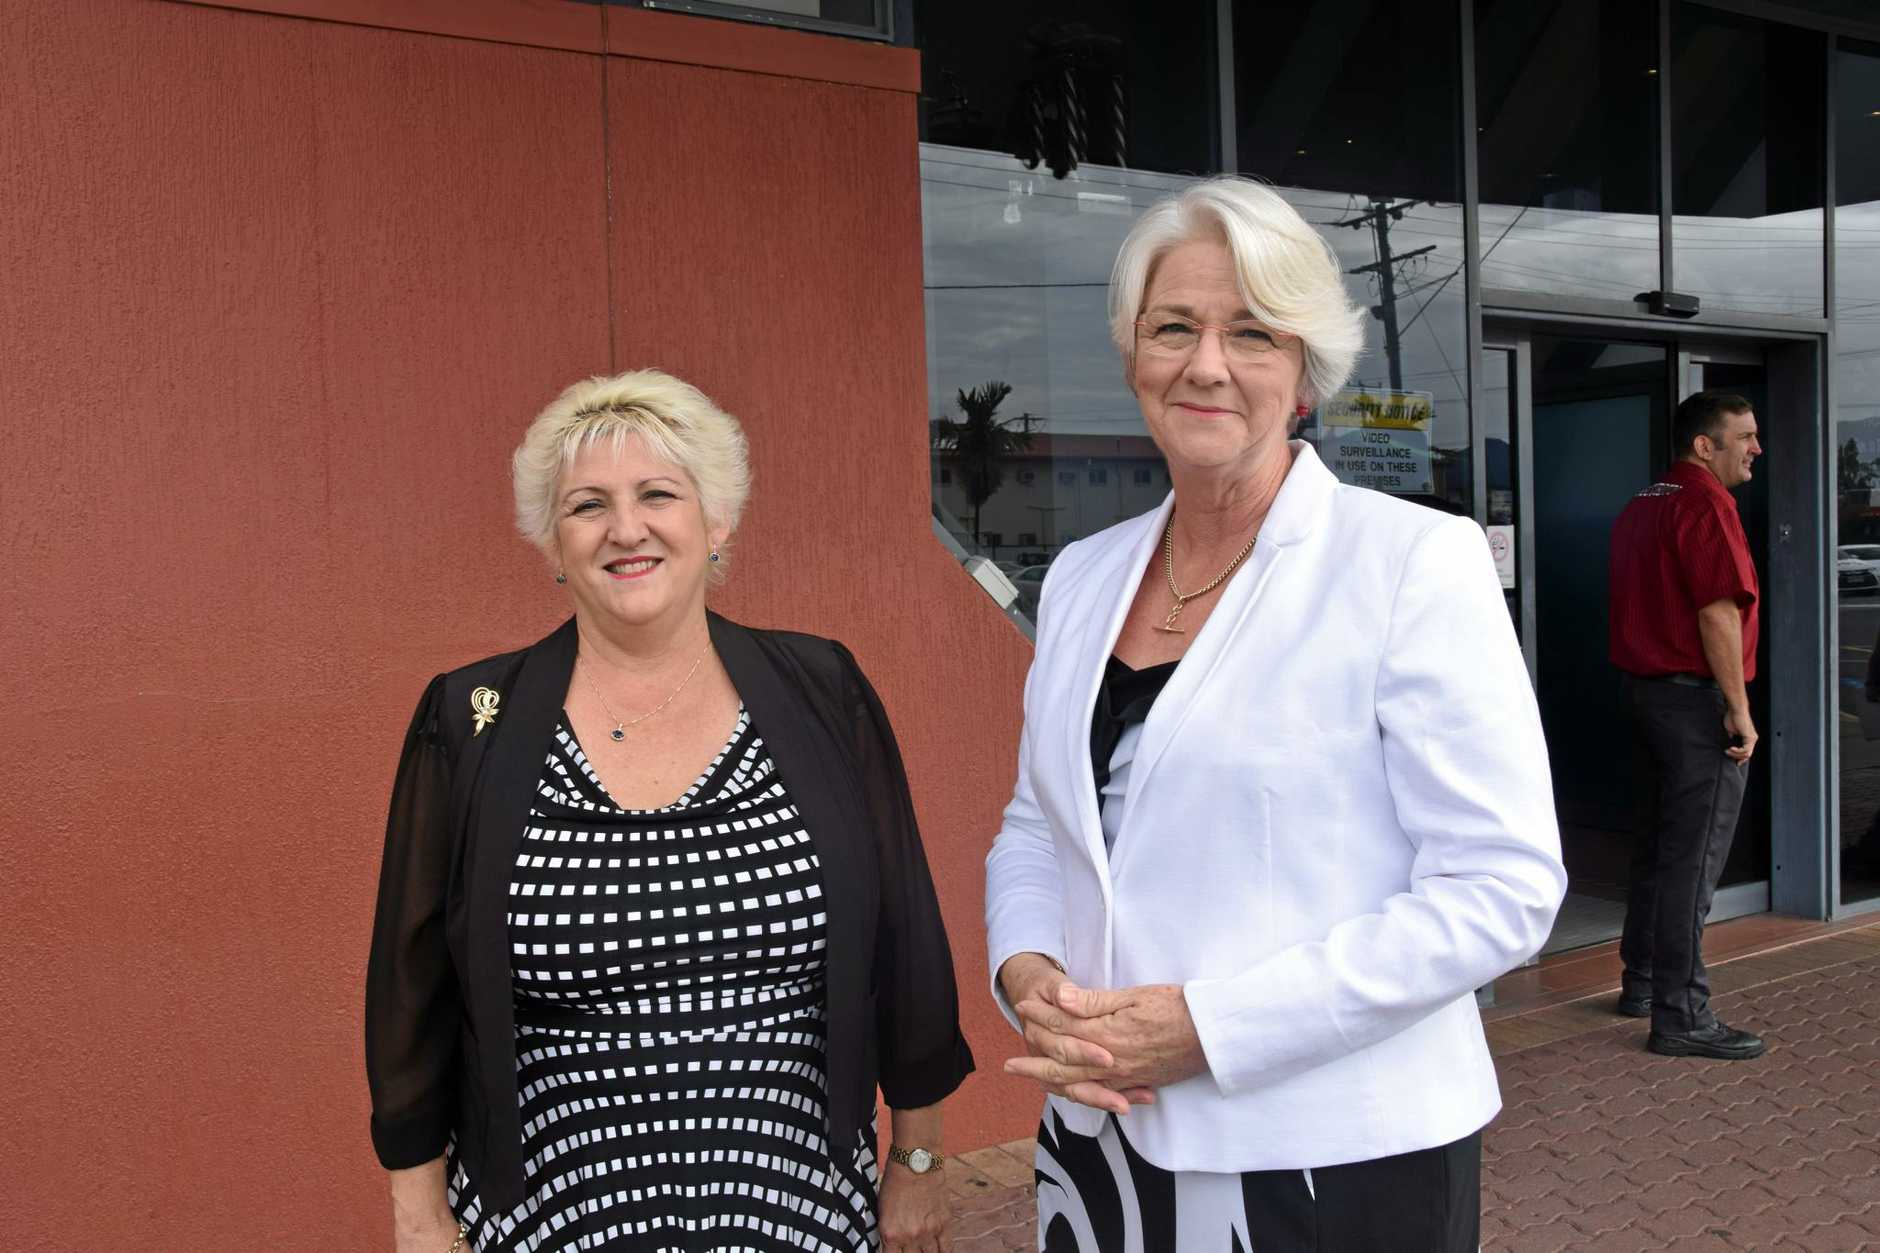 LEVEE DEBATE: Capricornia MP Michelle Landry and Rockhampton Region mayor Margaret Strelow are still struggling to find a way forward with the South Rockhampton flood levee.